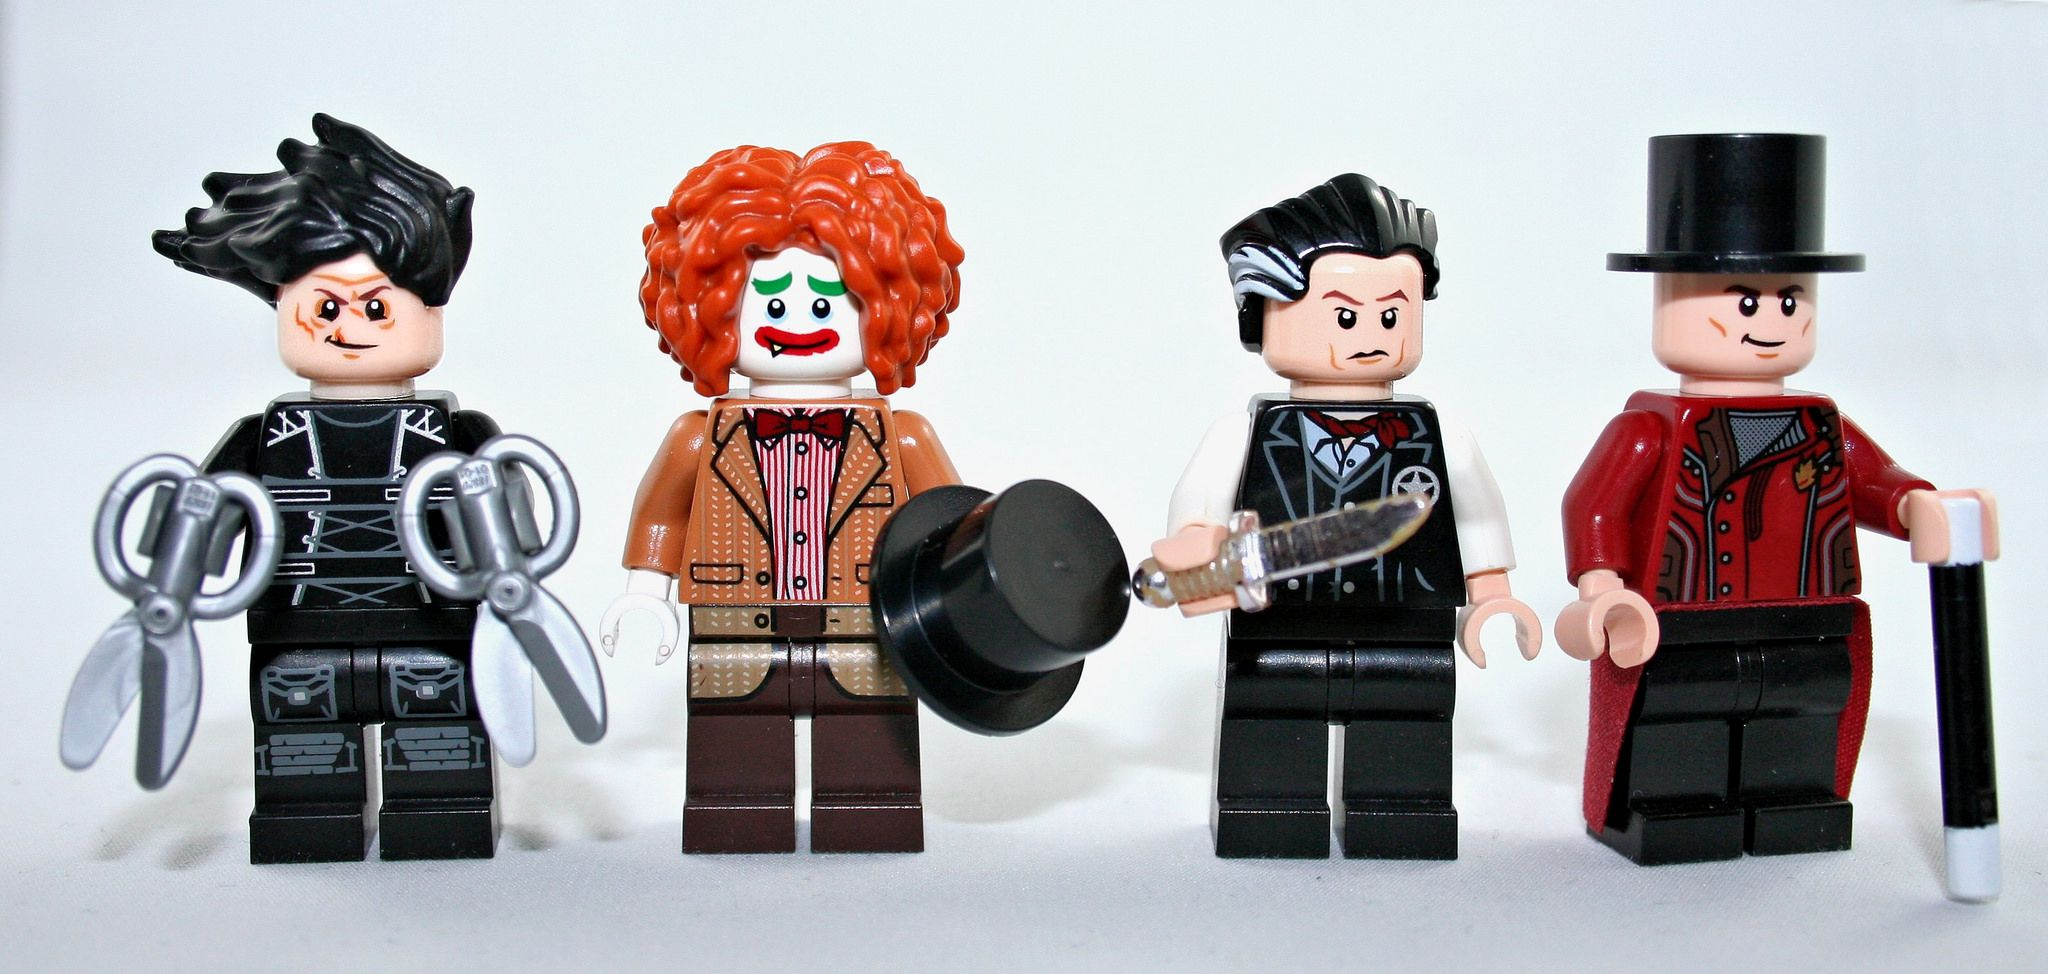 Lego Johnny Depp Figbarf Part 3 Sweeney Todd Lego And Lego Figures